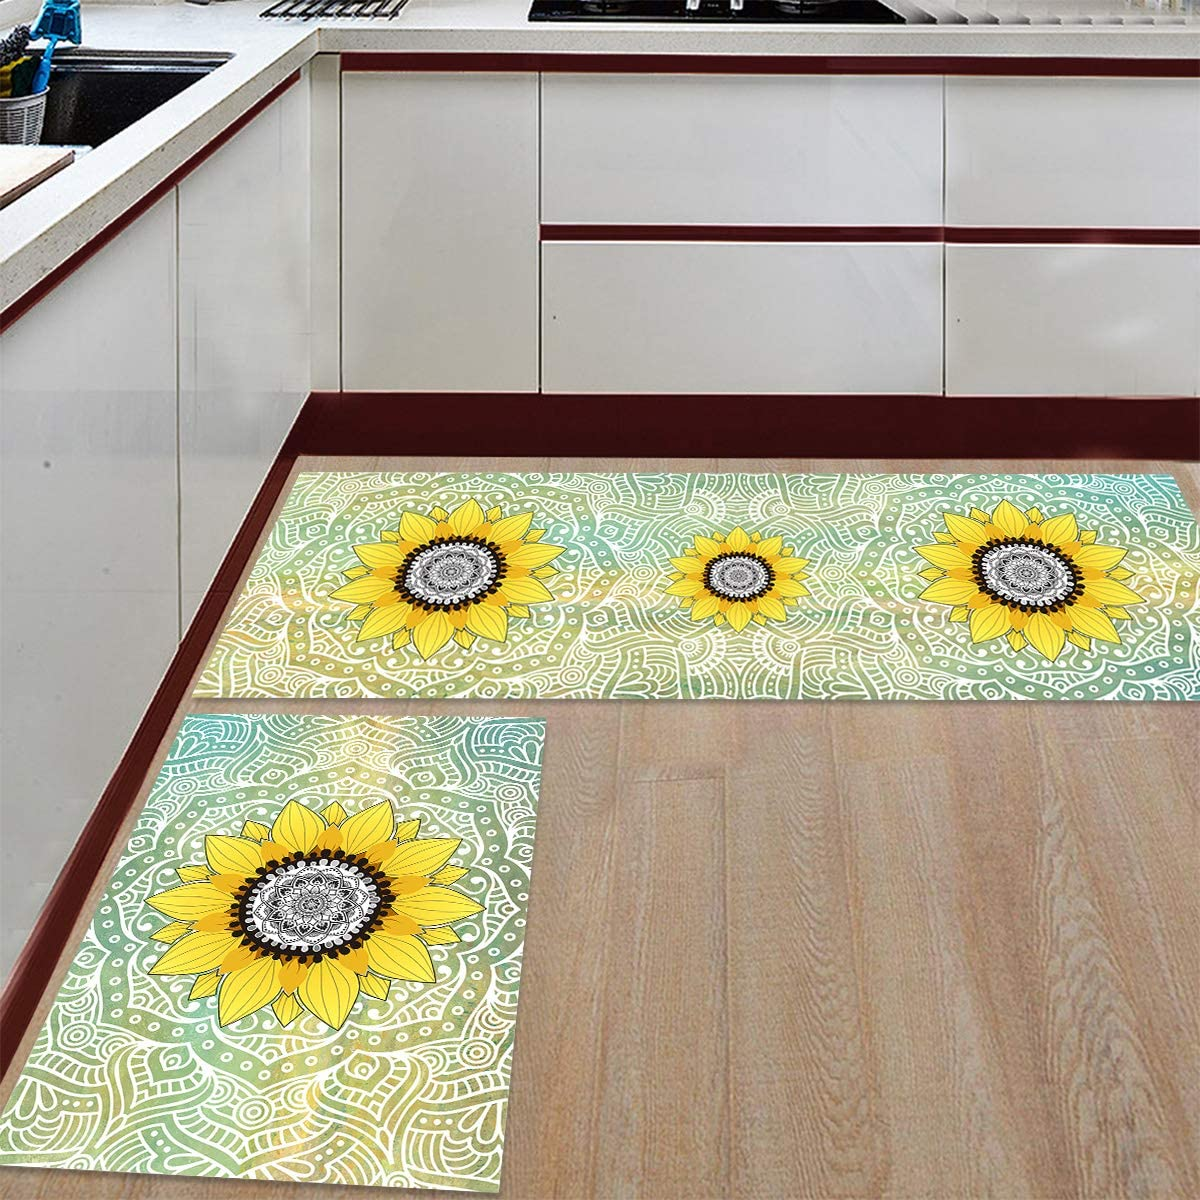 Be super welcome Advancey 2 Challenge the lowest price of Japan ☆ Pieces Anti-Slip Kitchen Mats and G Sunflower Mandala